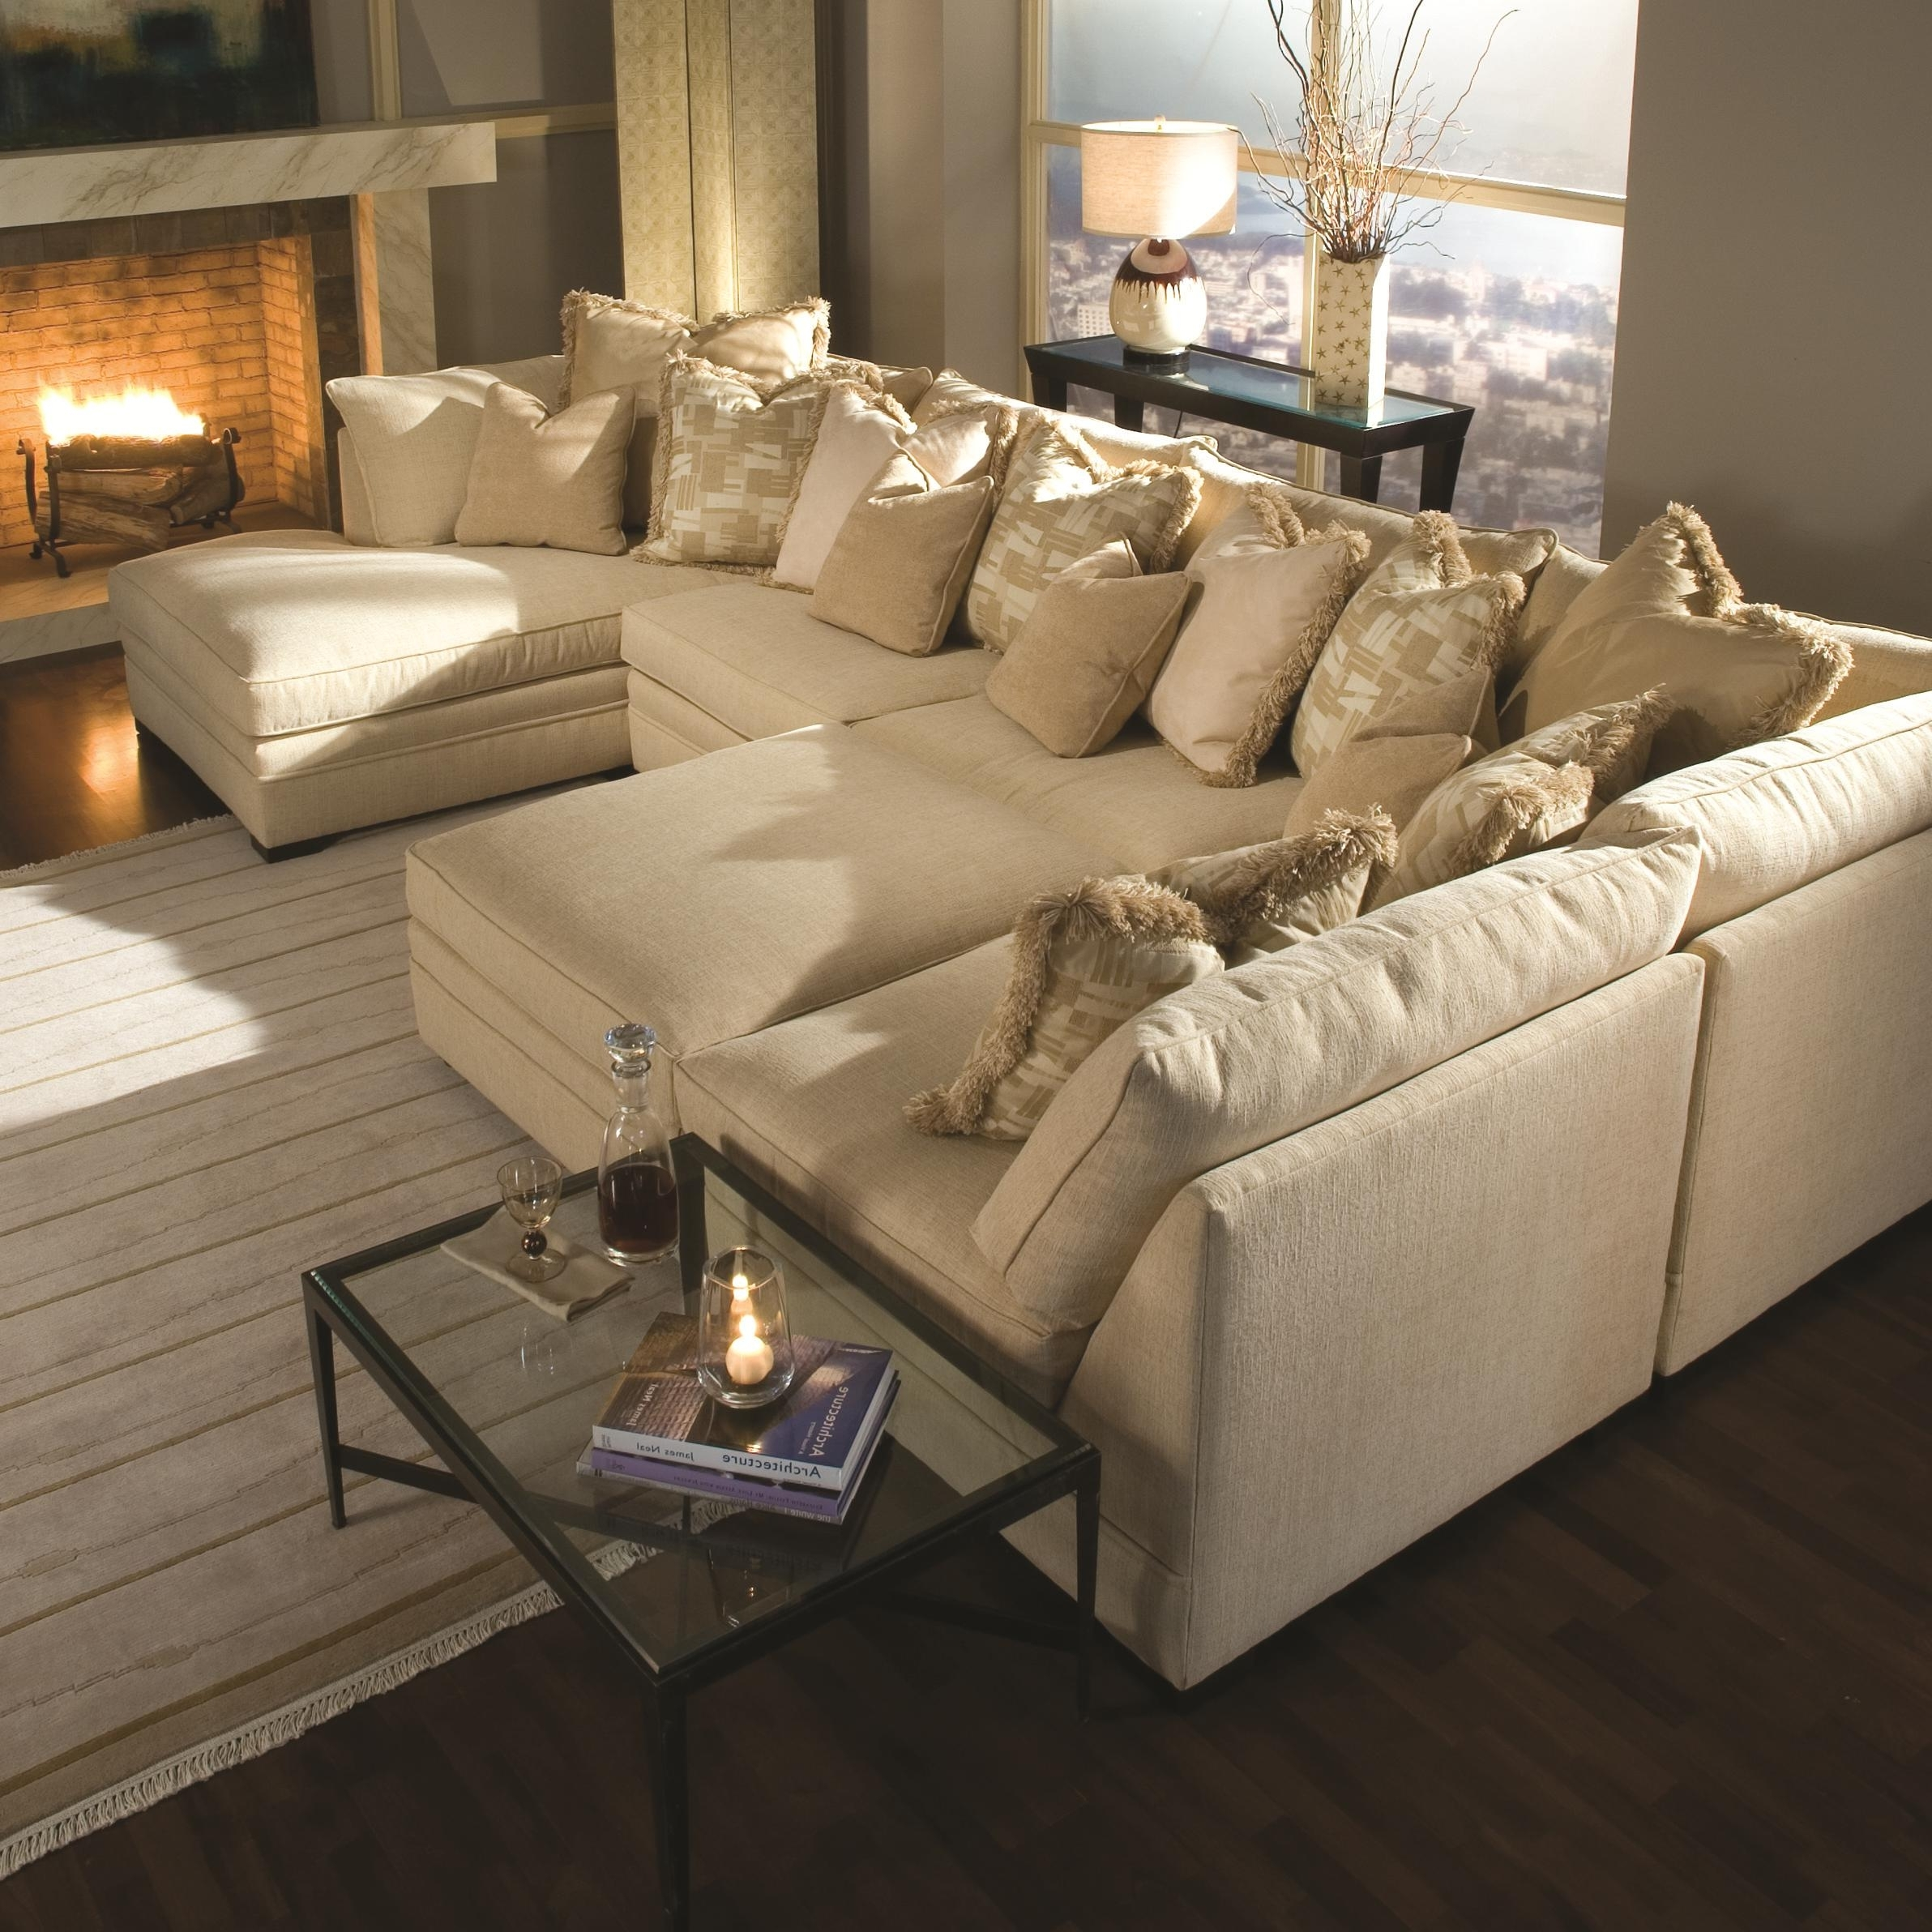 Widely Used 10 Foot Sectional Sofa – Cleanupflorida Intended For Mississauga Sectional Sofas (View 15 of 15)